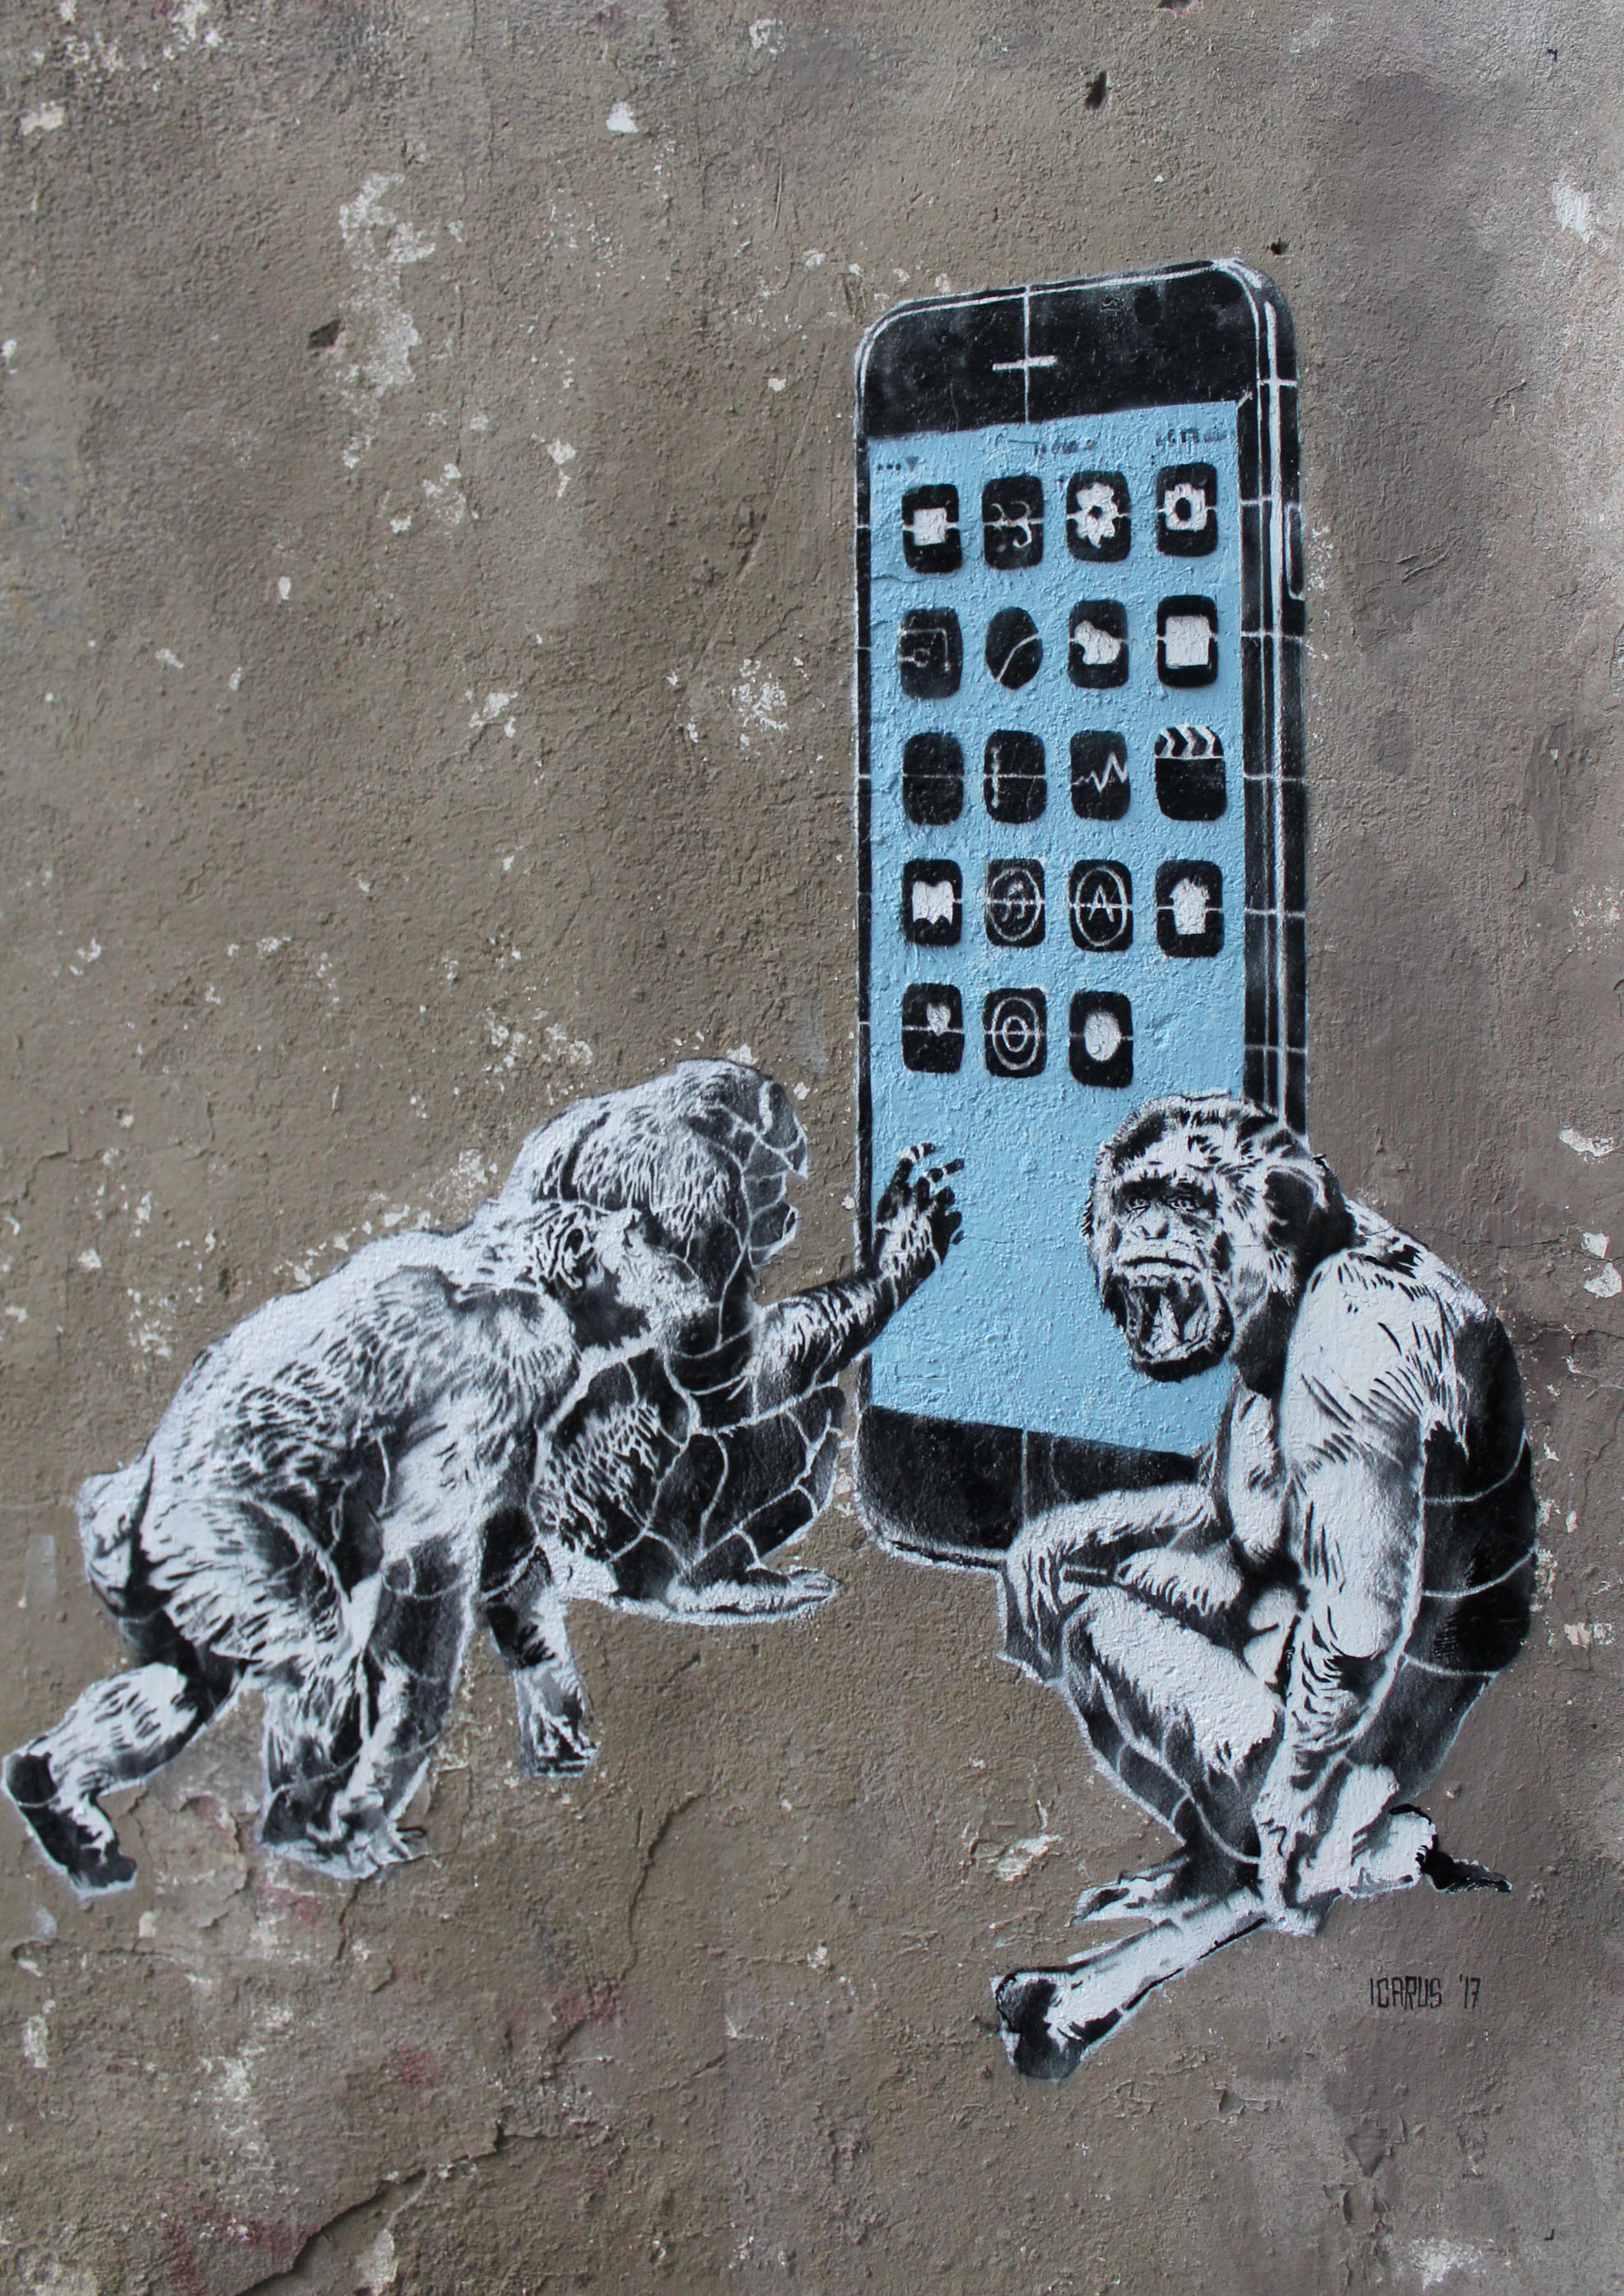 Daniel Garcia Art Illustration Stencil Grafitti Szablon Dzem Monkeys Space Odyssey 01